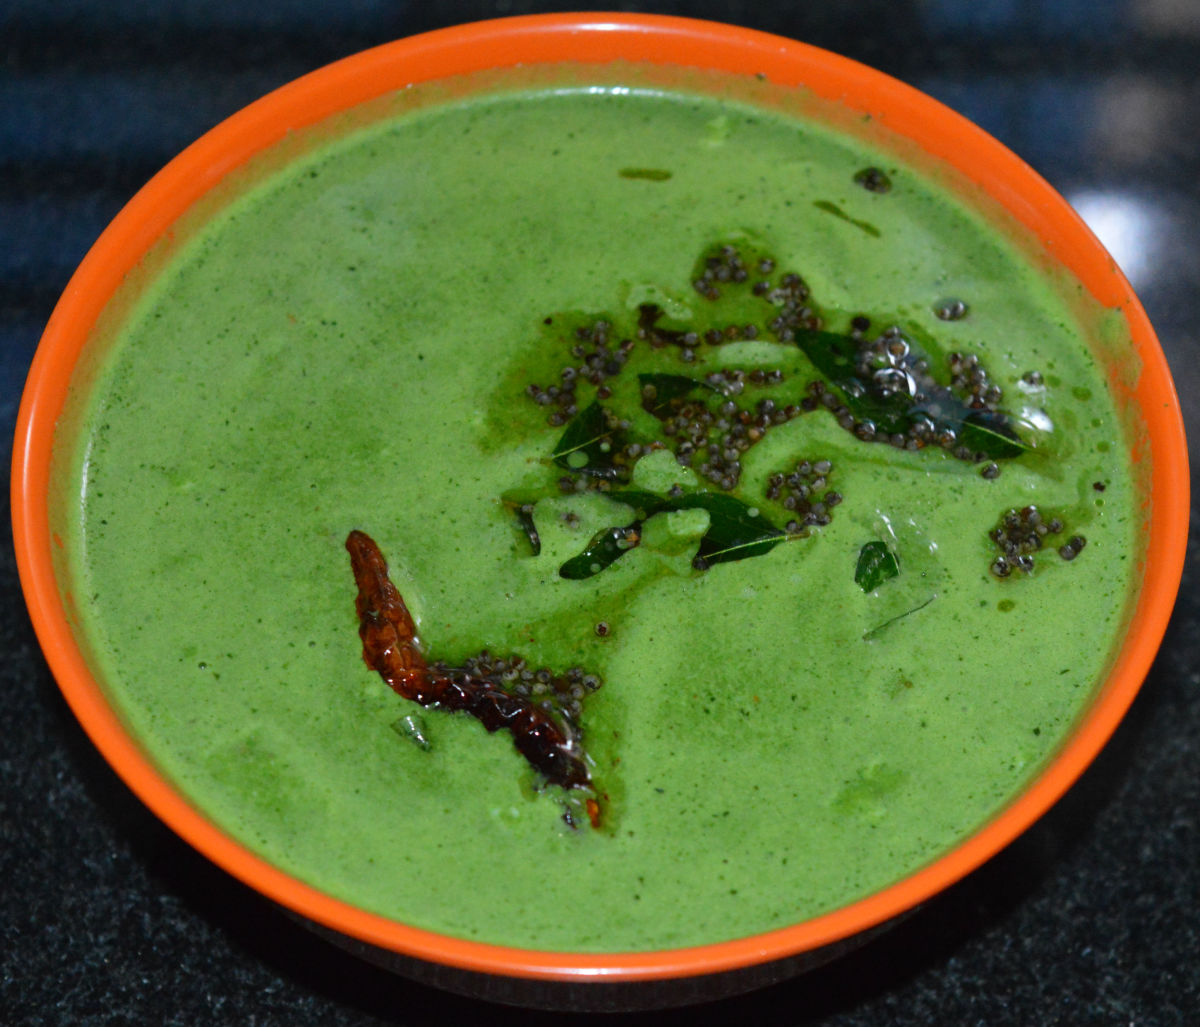 How to Make a Leafy Greens Drink (Leafy Vegetable Tambli)